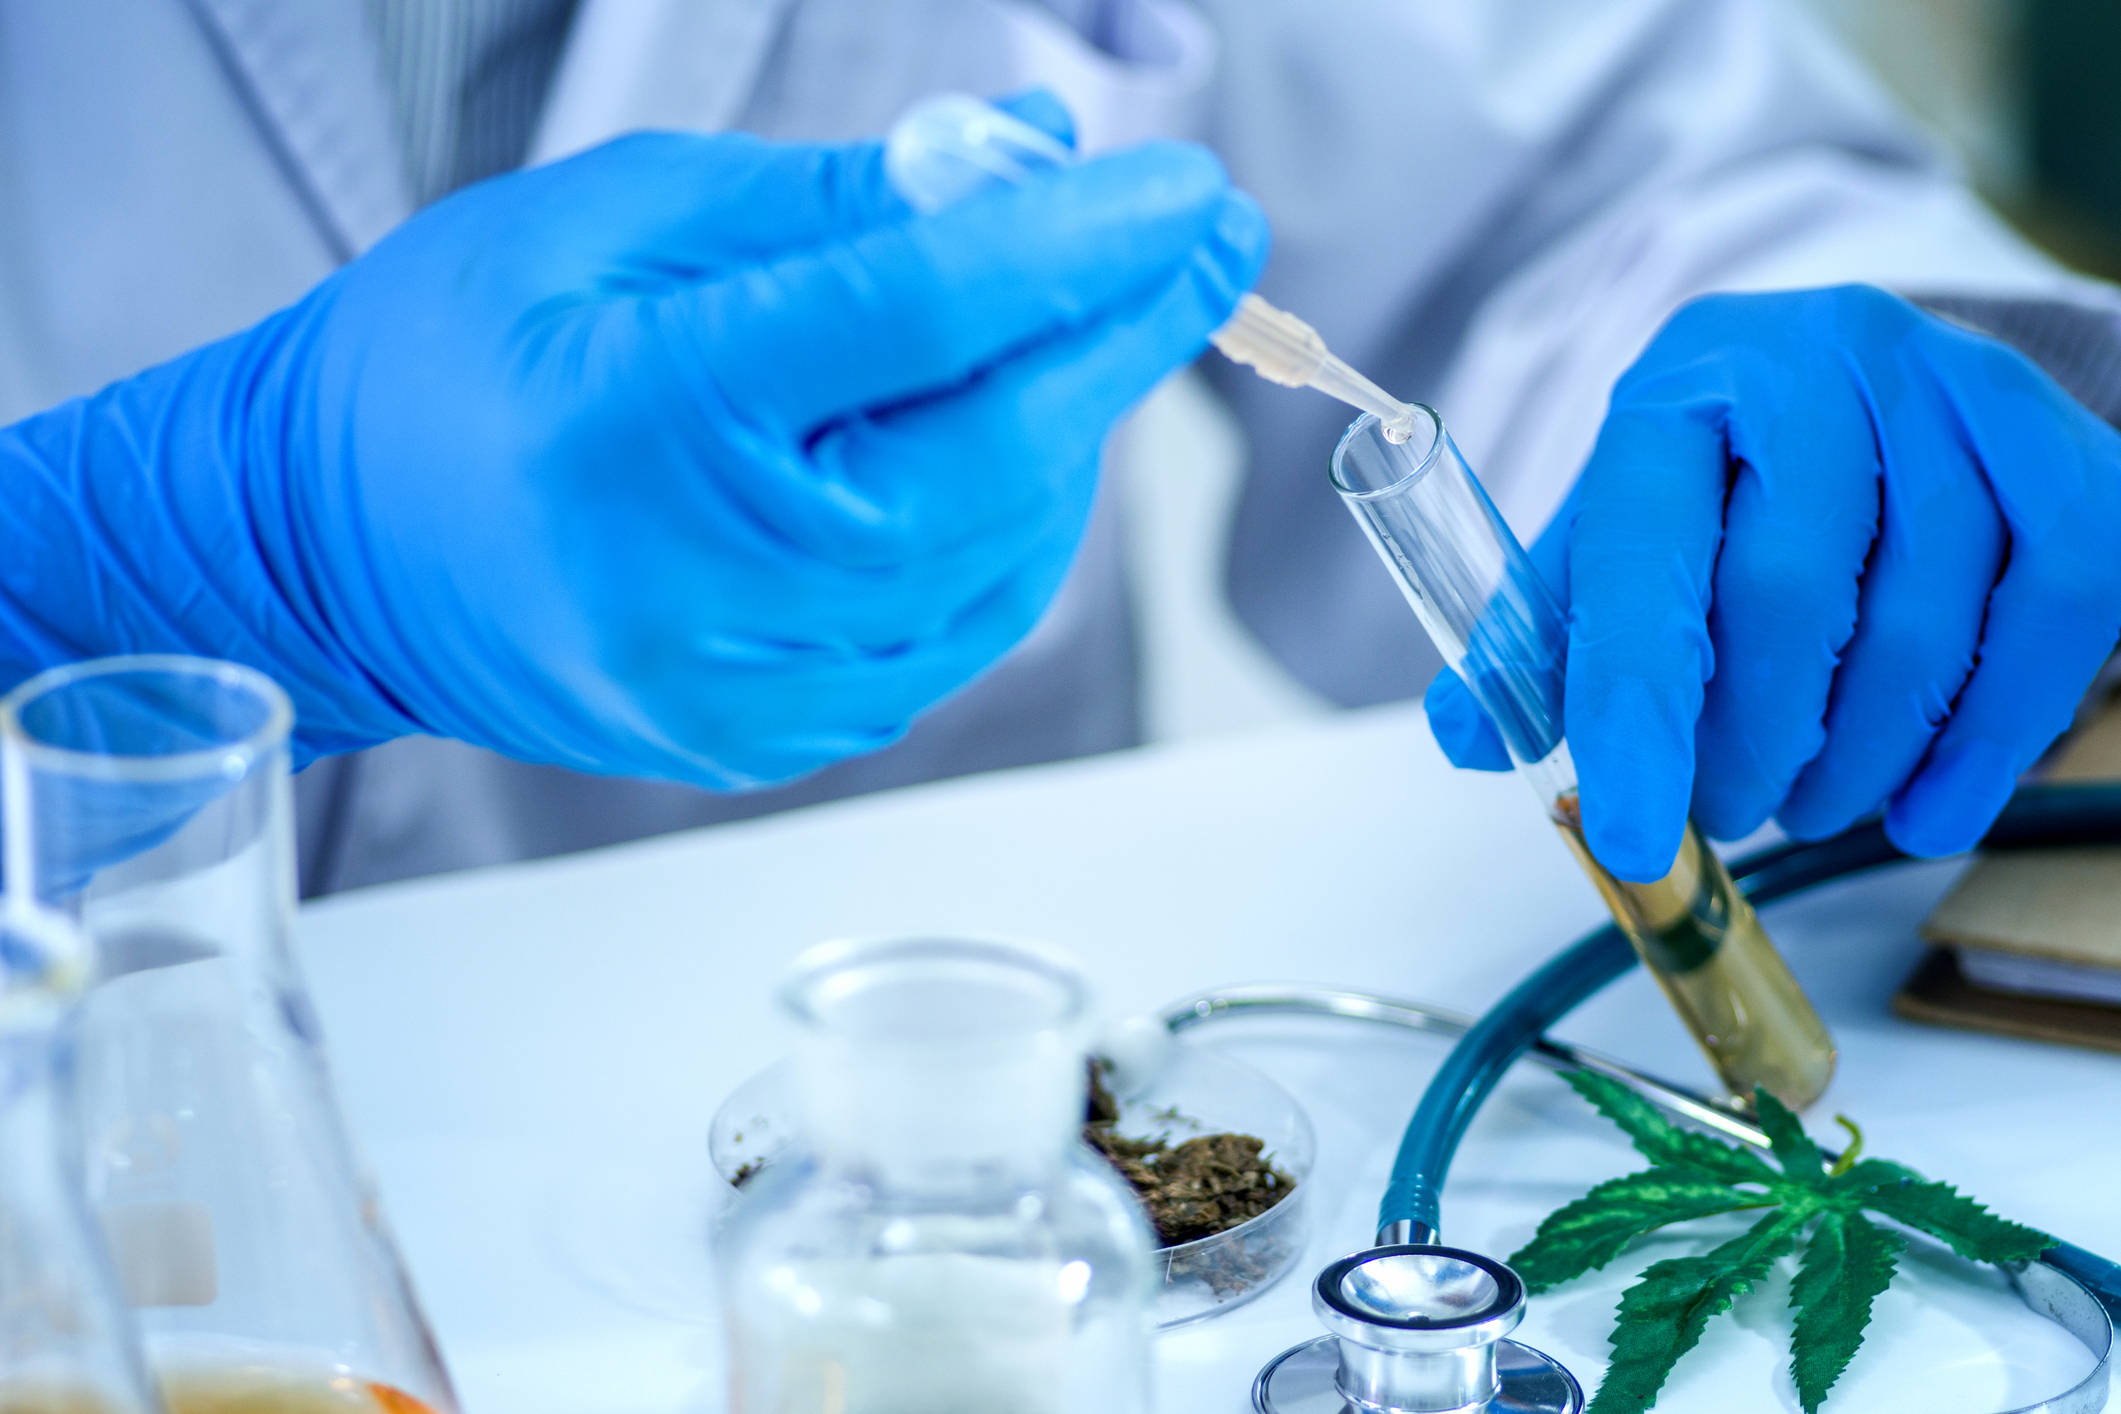 CBD may have potential to block coronavirus entry points